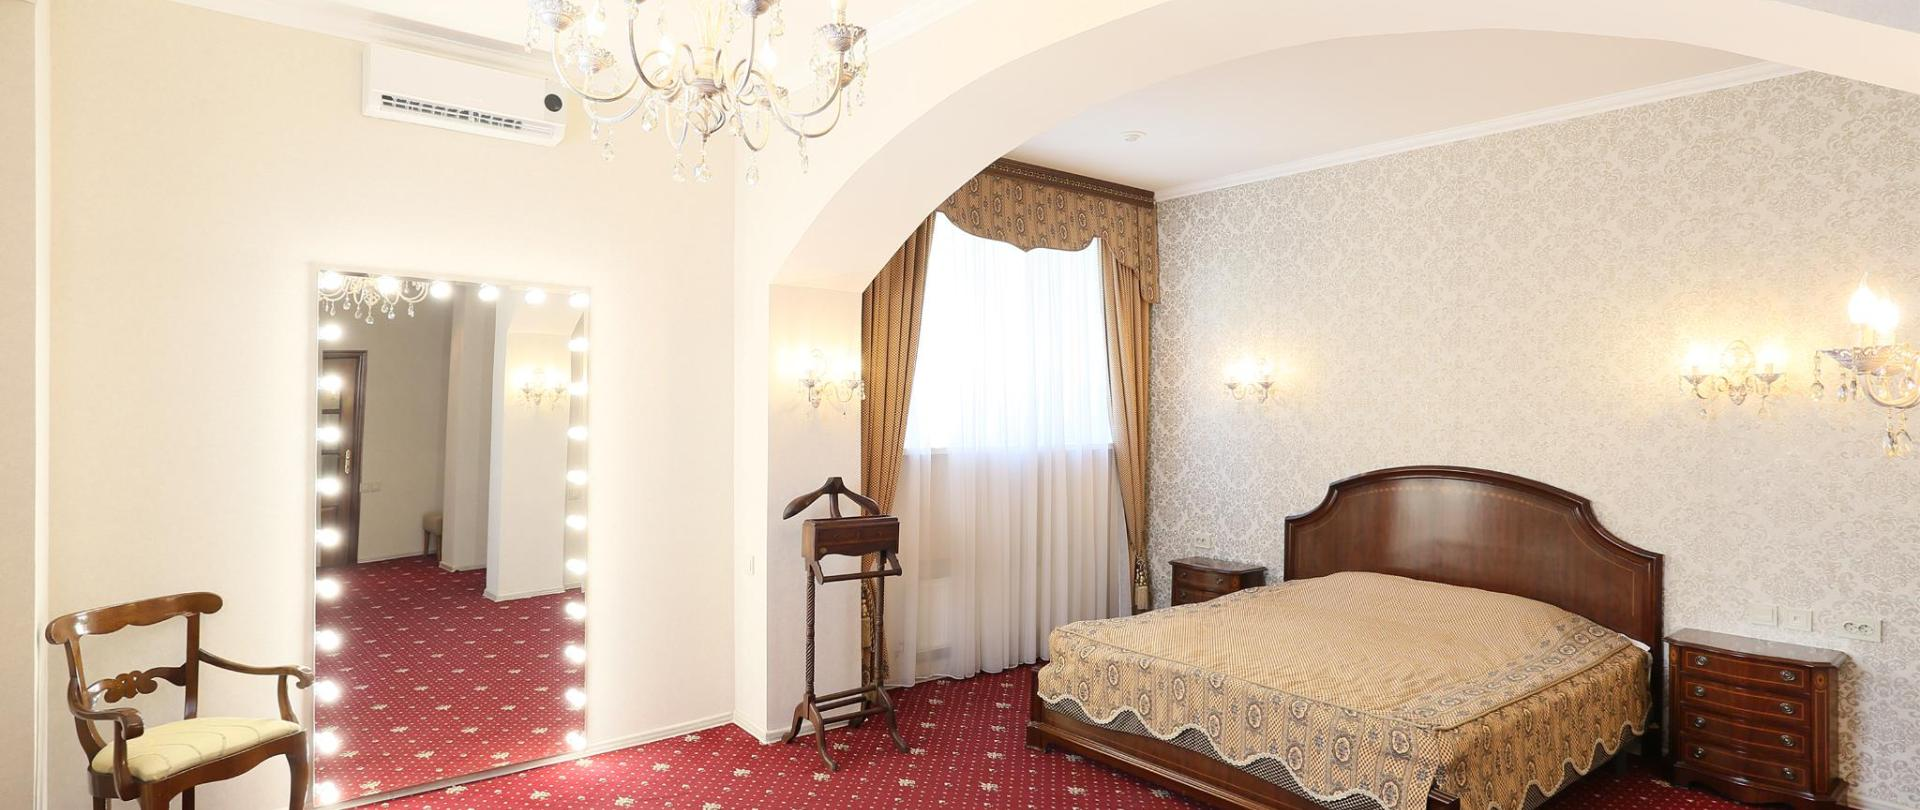 Guyot Business Hotel butikowy